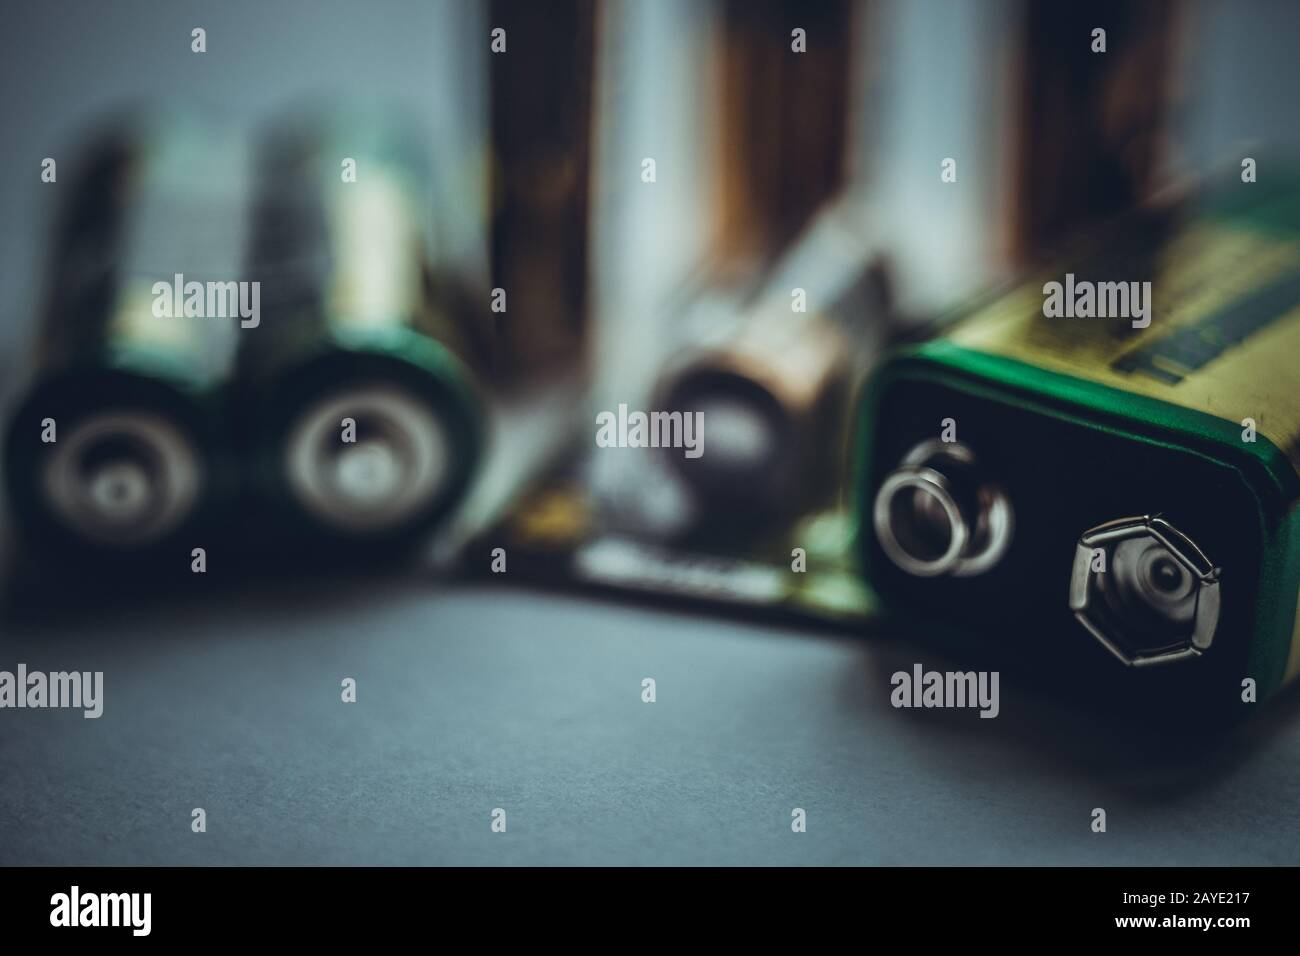 Different types of batteries on the dark table close-up Stock Photo